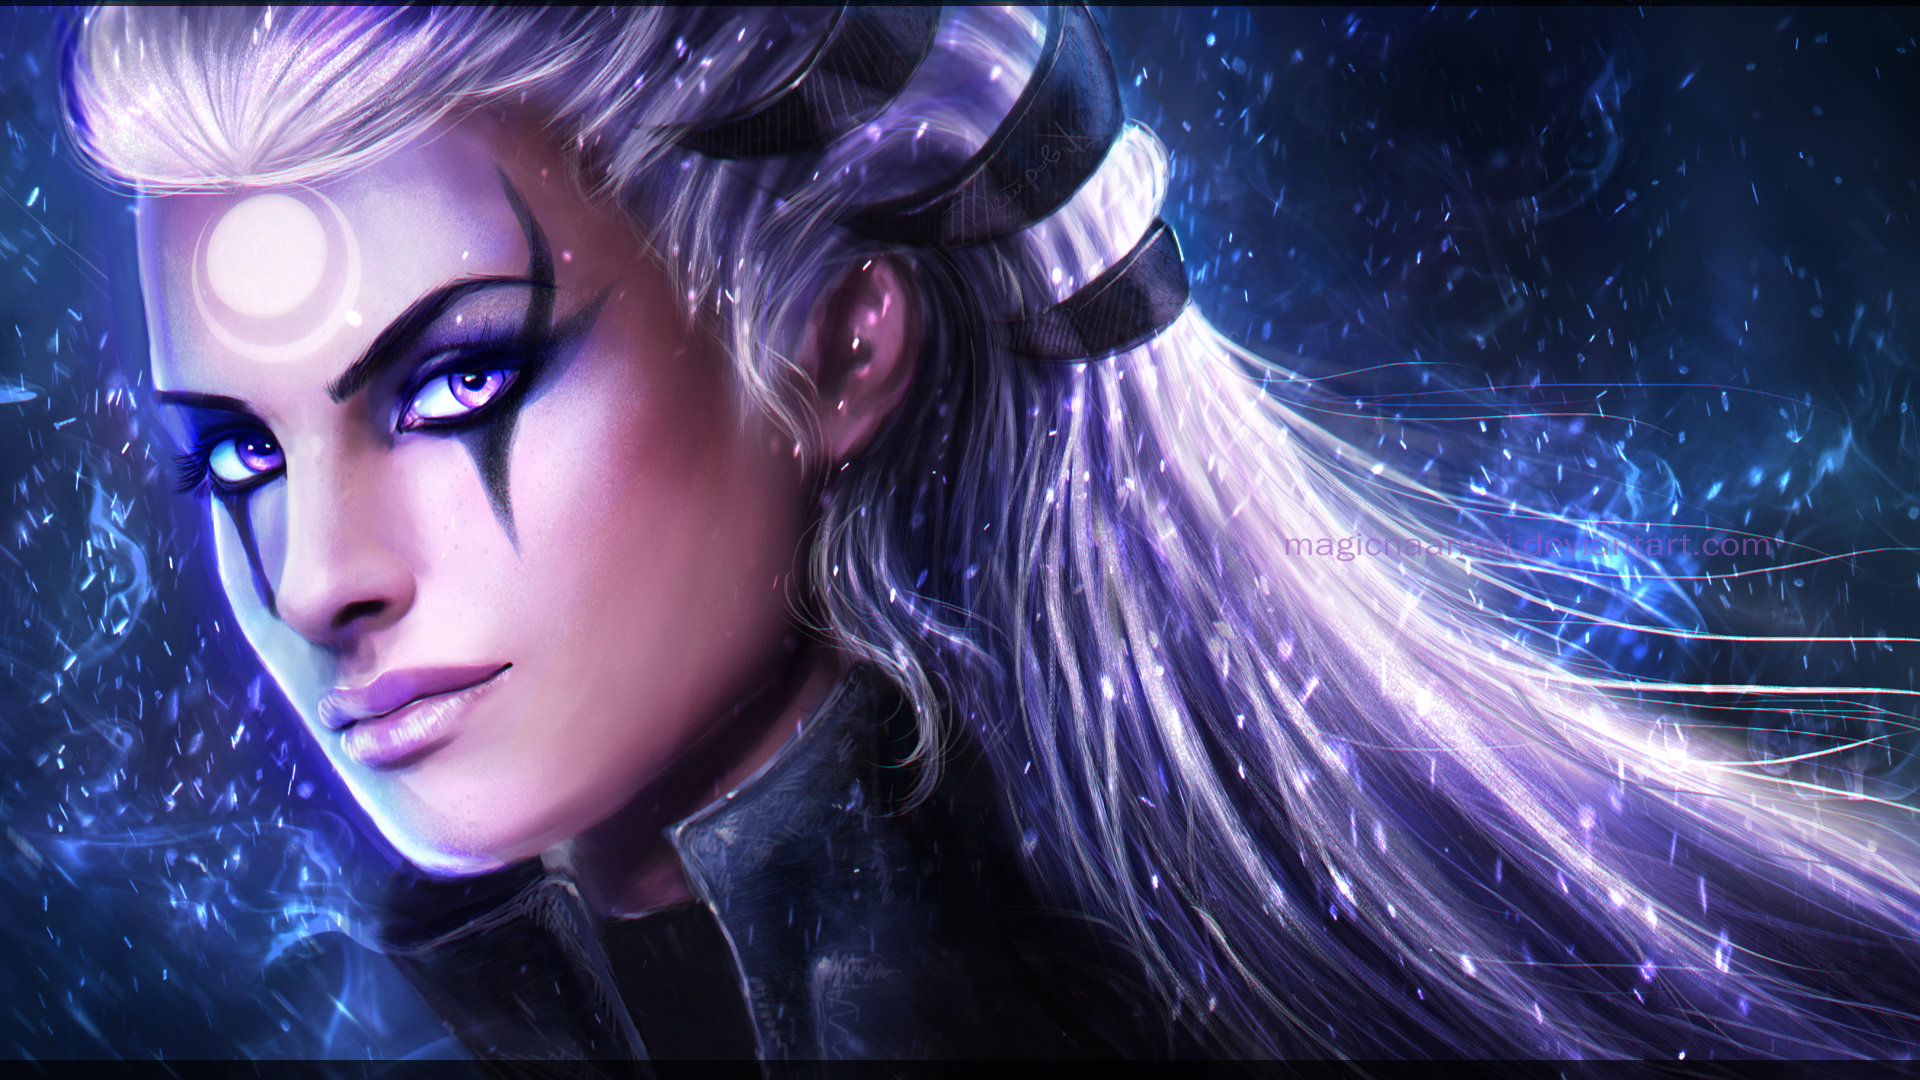 Diana Background 1920x1080